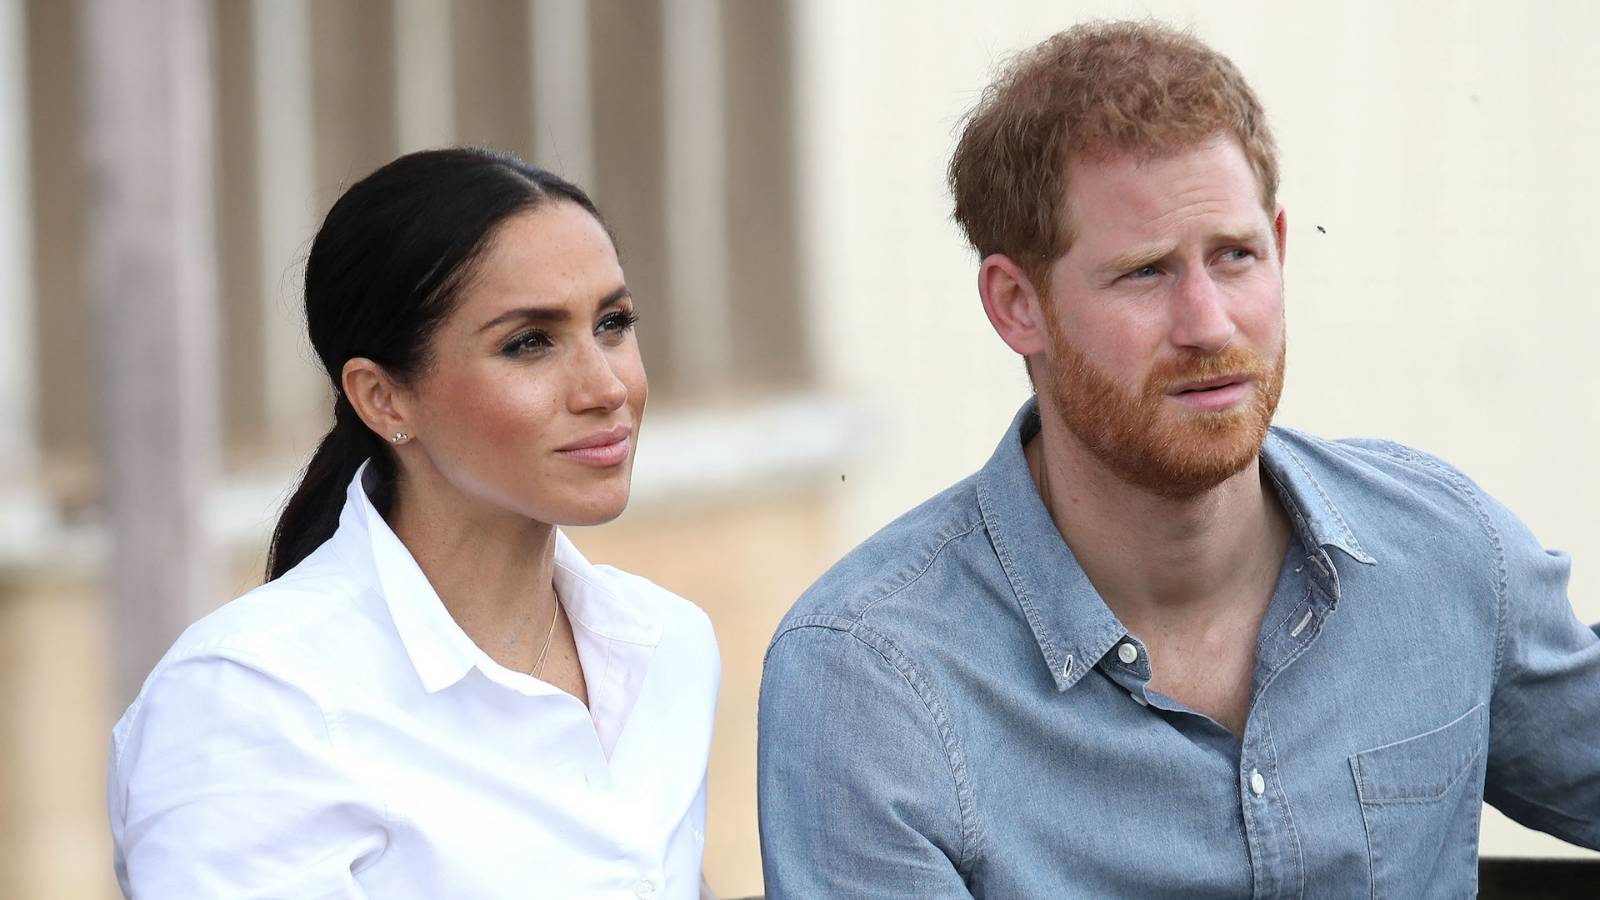 Prince Charles funded Harry and Meghan even after they stepped down as royals